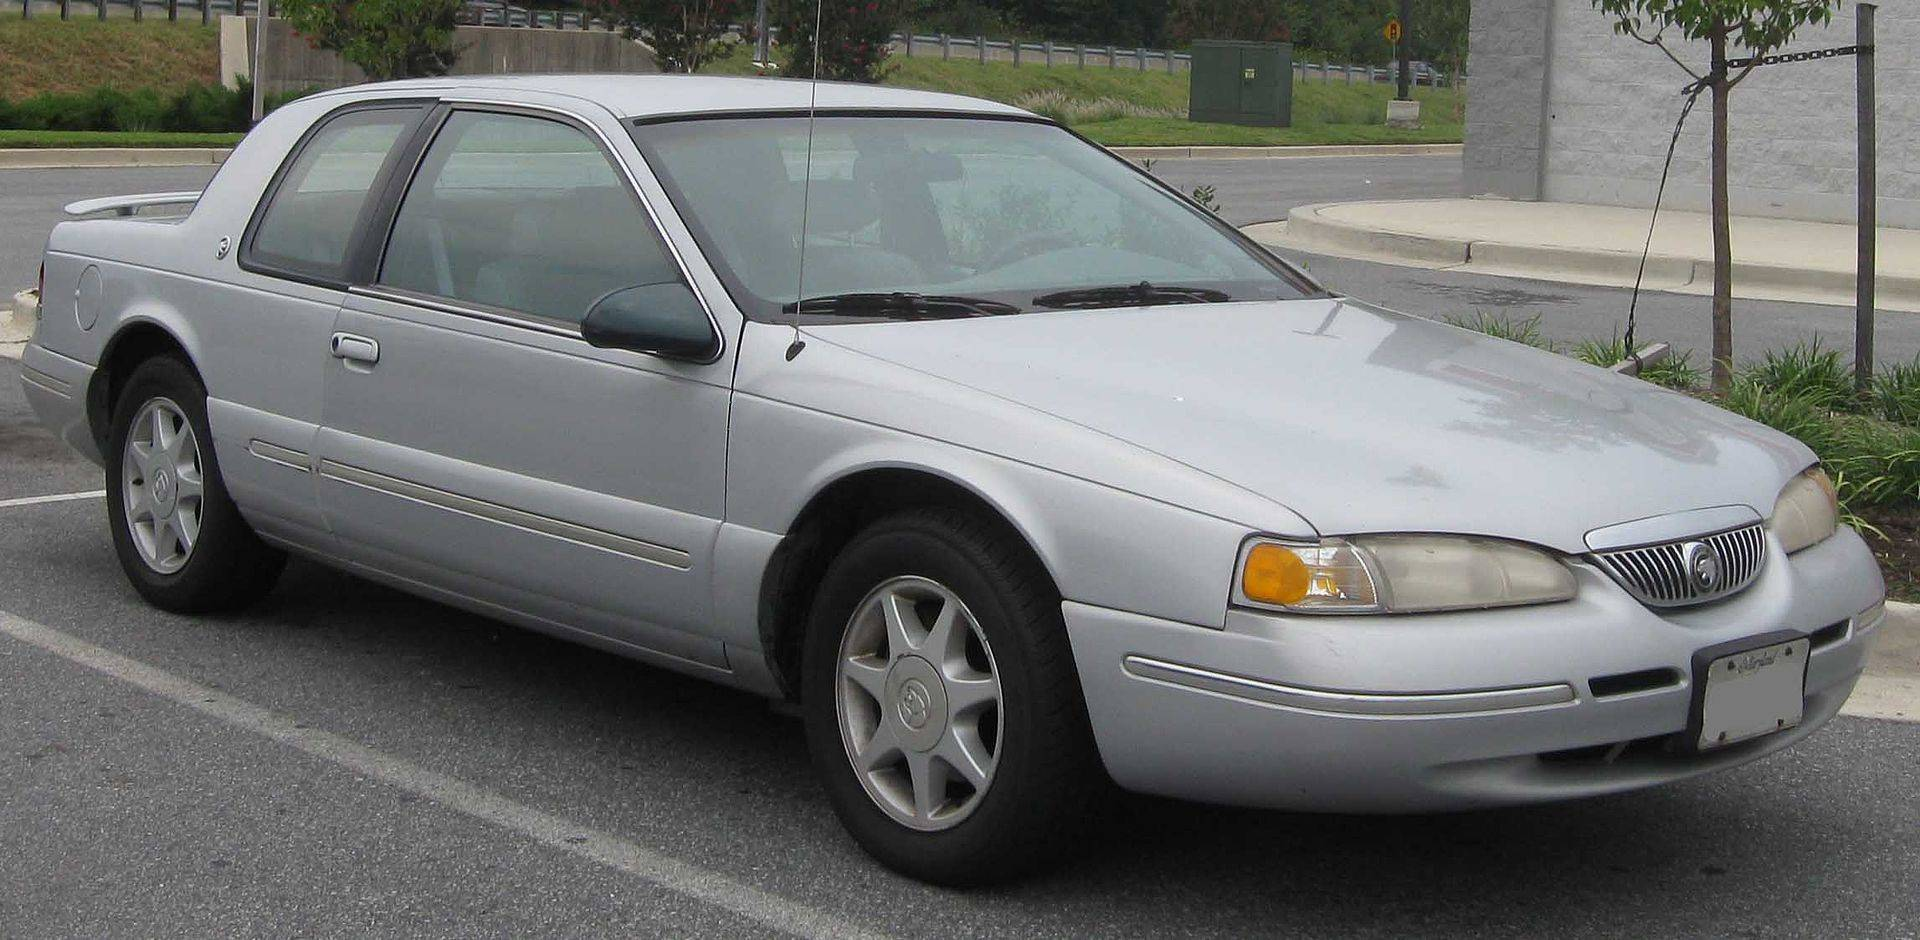 94 mercury cougar repair manual